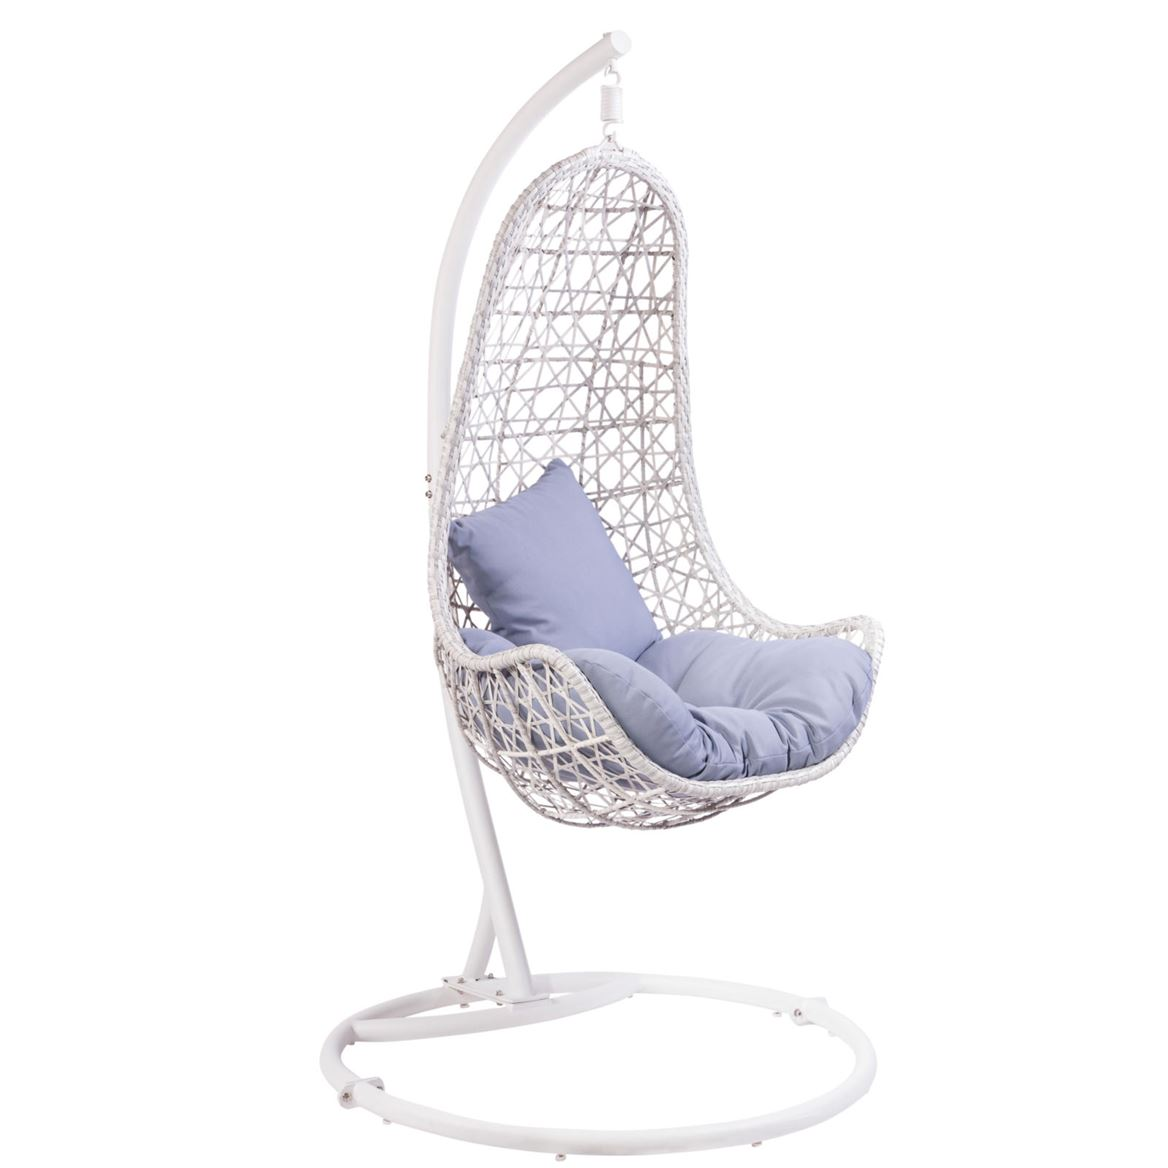 NEW WINGS Chaise suspendue off grey H 123 x Larg. 79 x P 64 cm_new-wings-chaise-suspendue-off-grey-h-123-x-larg--79-x-p-64-cm